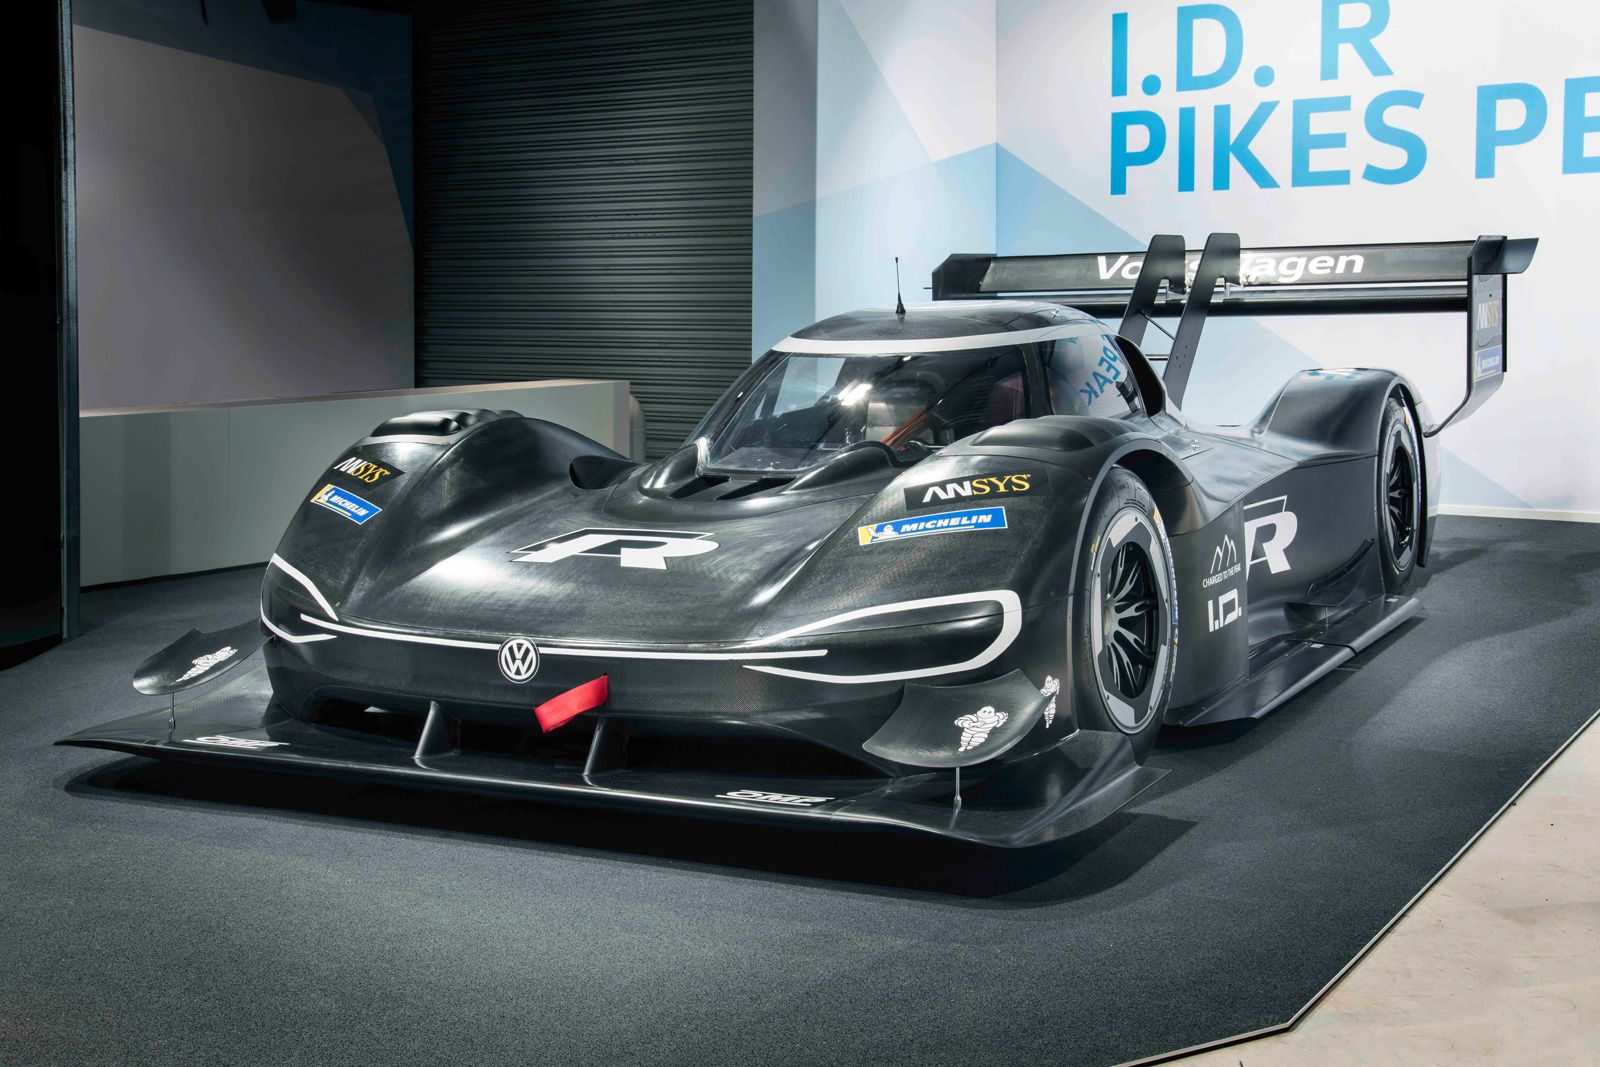 Vw S Electric Pikes Peak Racer Accelerates Faster Than An F1 Car Race Car Builds Pikes Peak Volkswagen